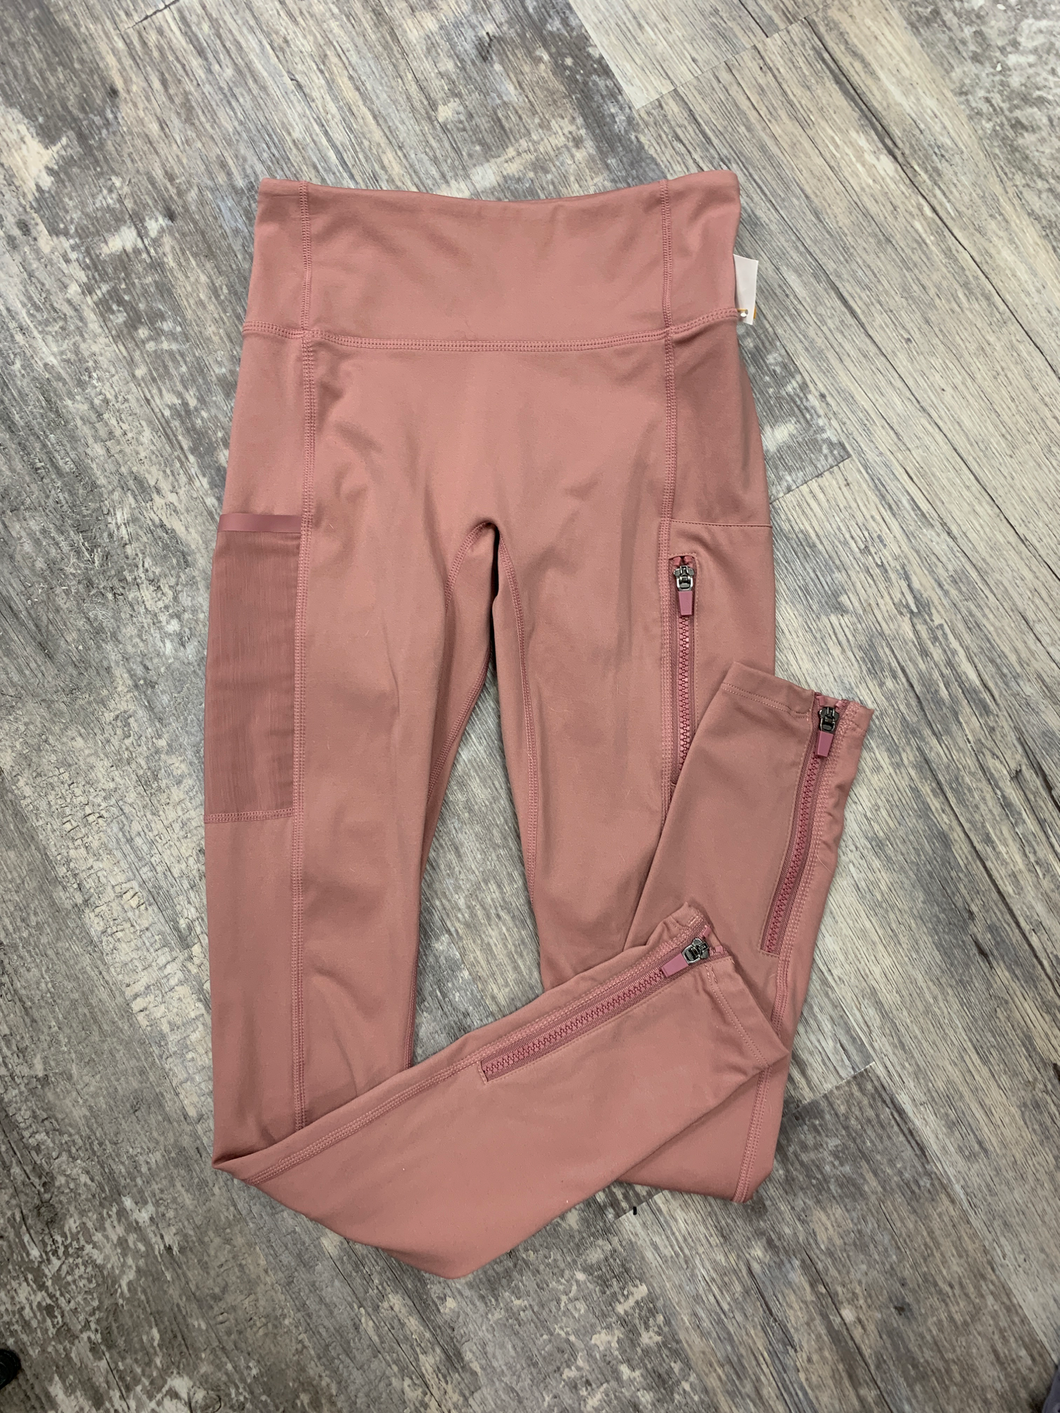 Fabletics Athletic Pants Size Extra Small